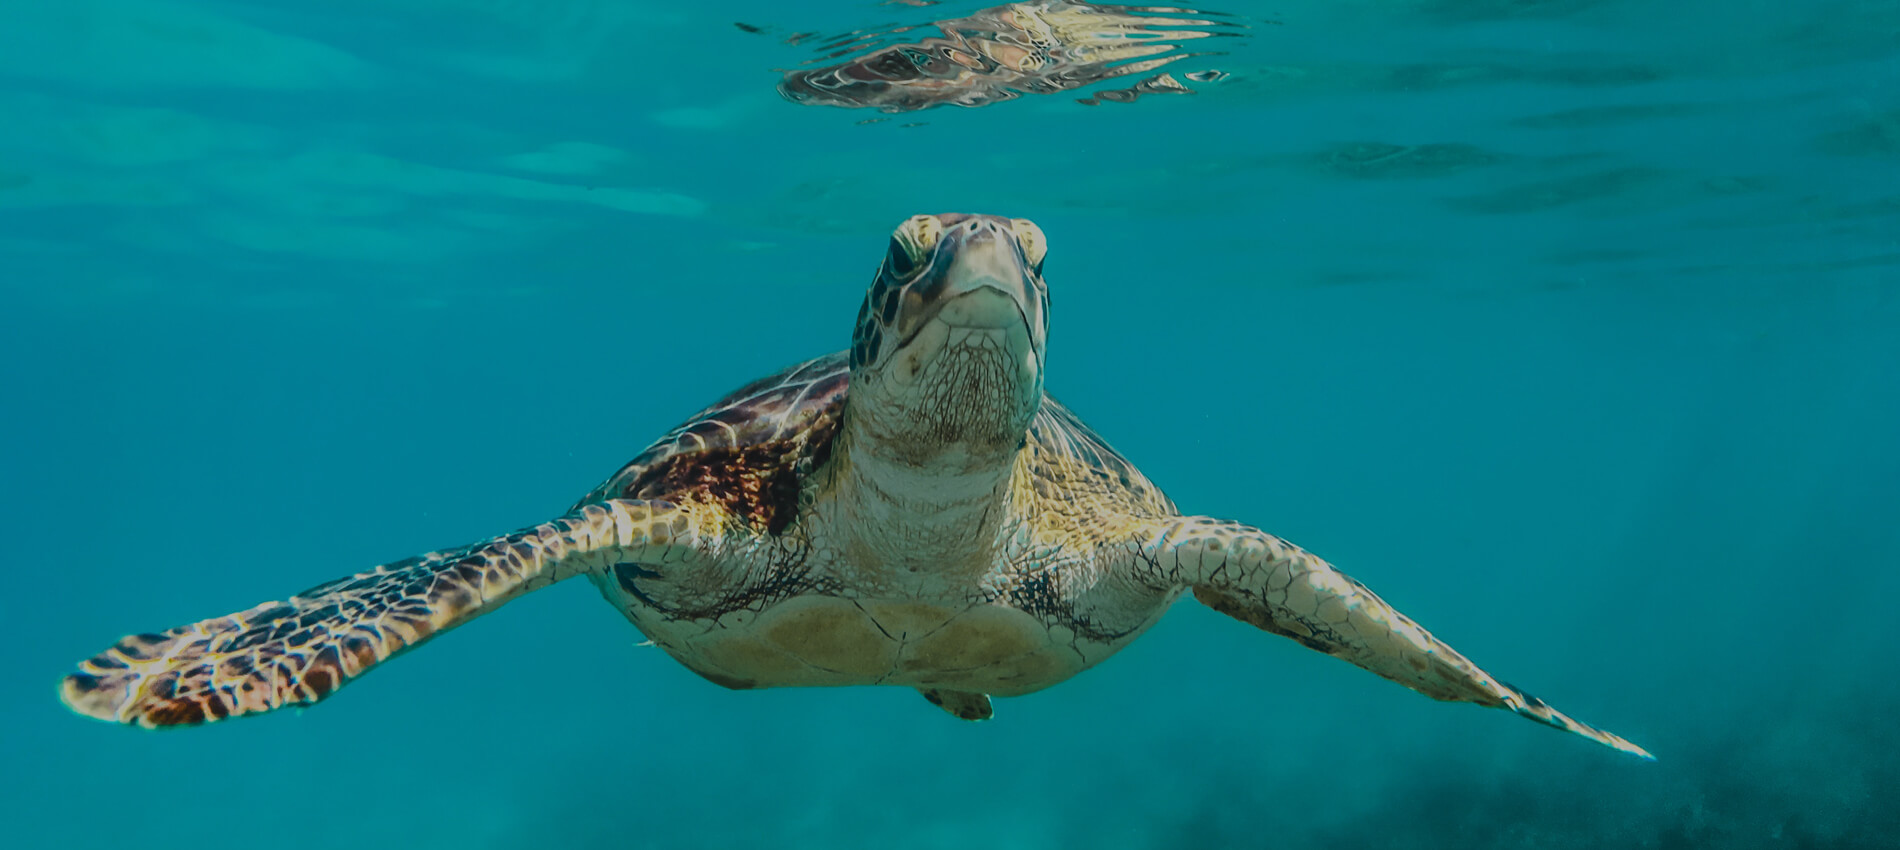 Small Ship Voyages Book Luxury Cruises with Atlas Ocean Voyages - Swimming with Sea Turtles